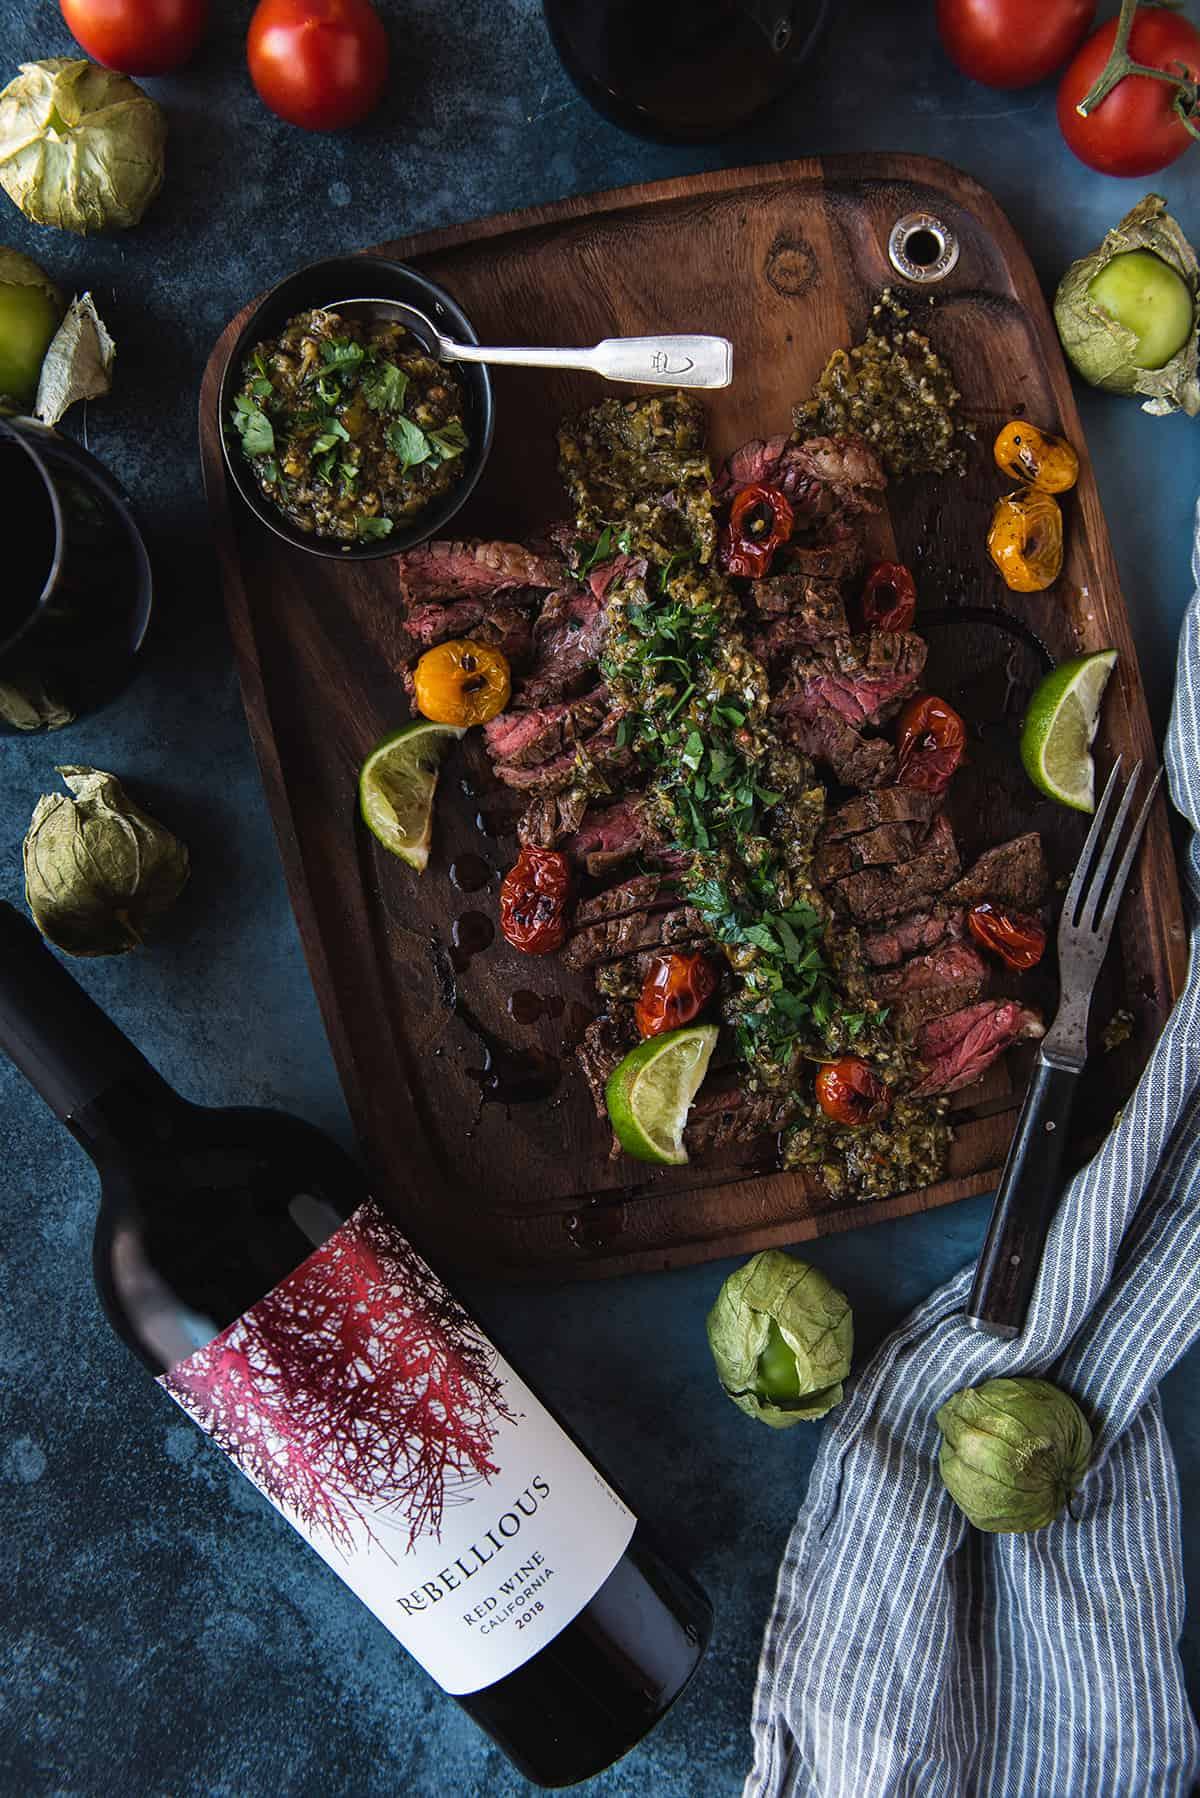 skirt steak on wood platter, chimichurri on top with rebellious wine